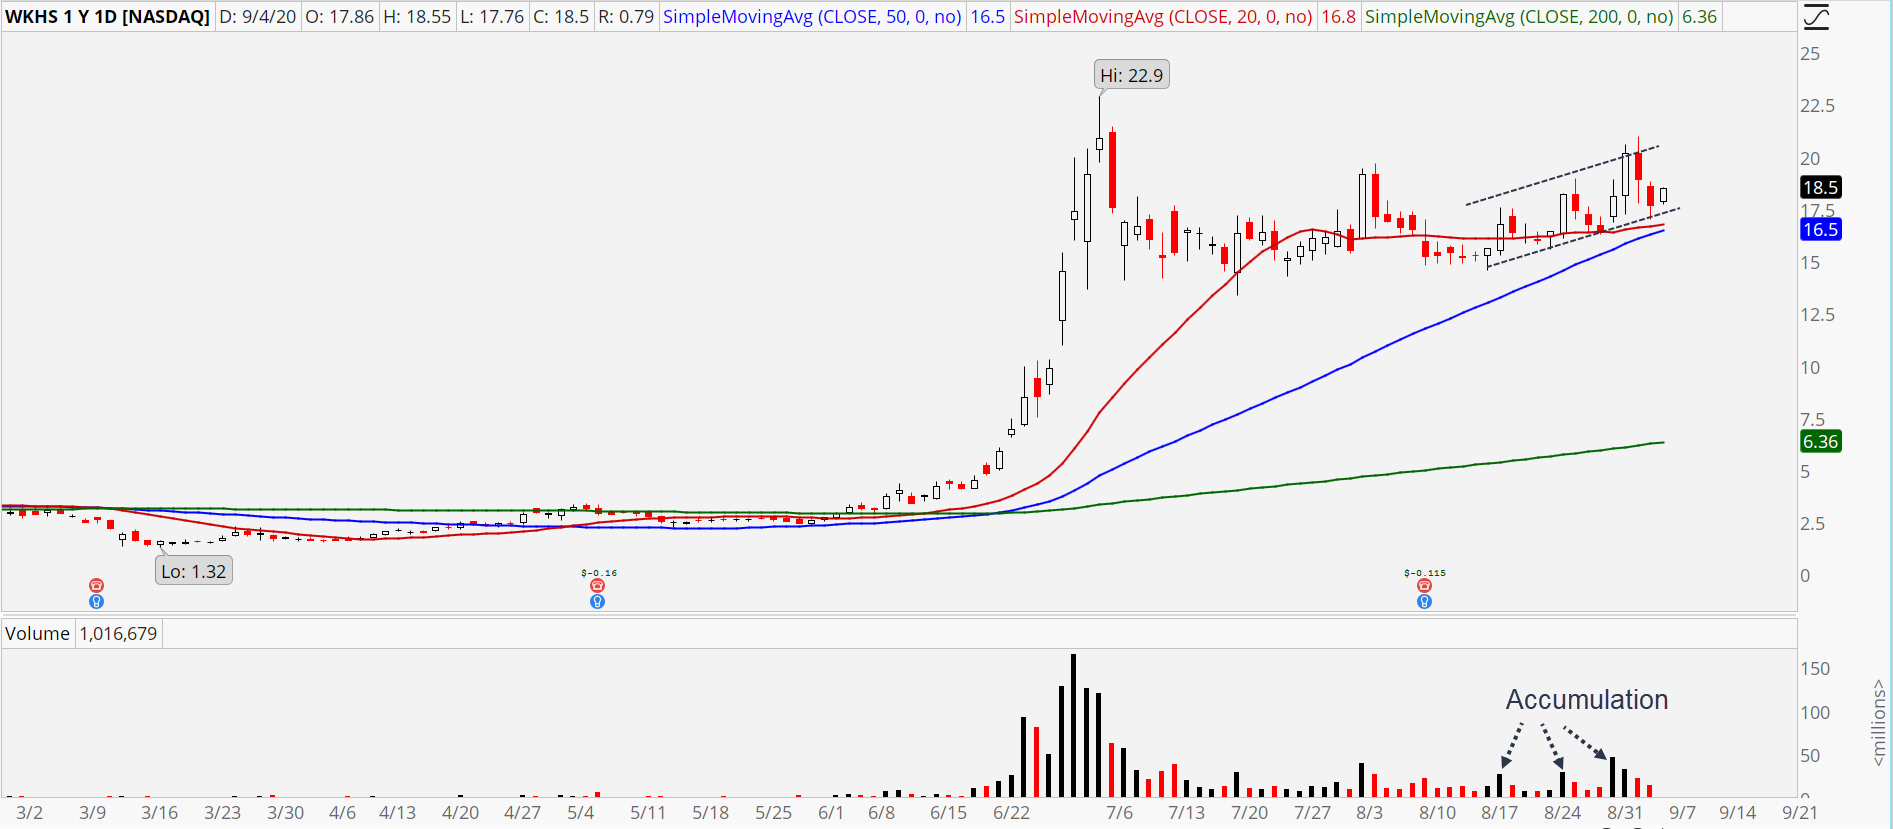 Workhorse (WKHS) stock chart showing healthy uptrend.